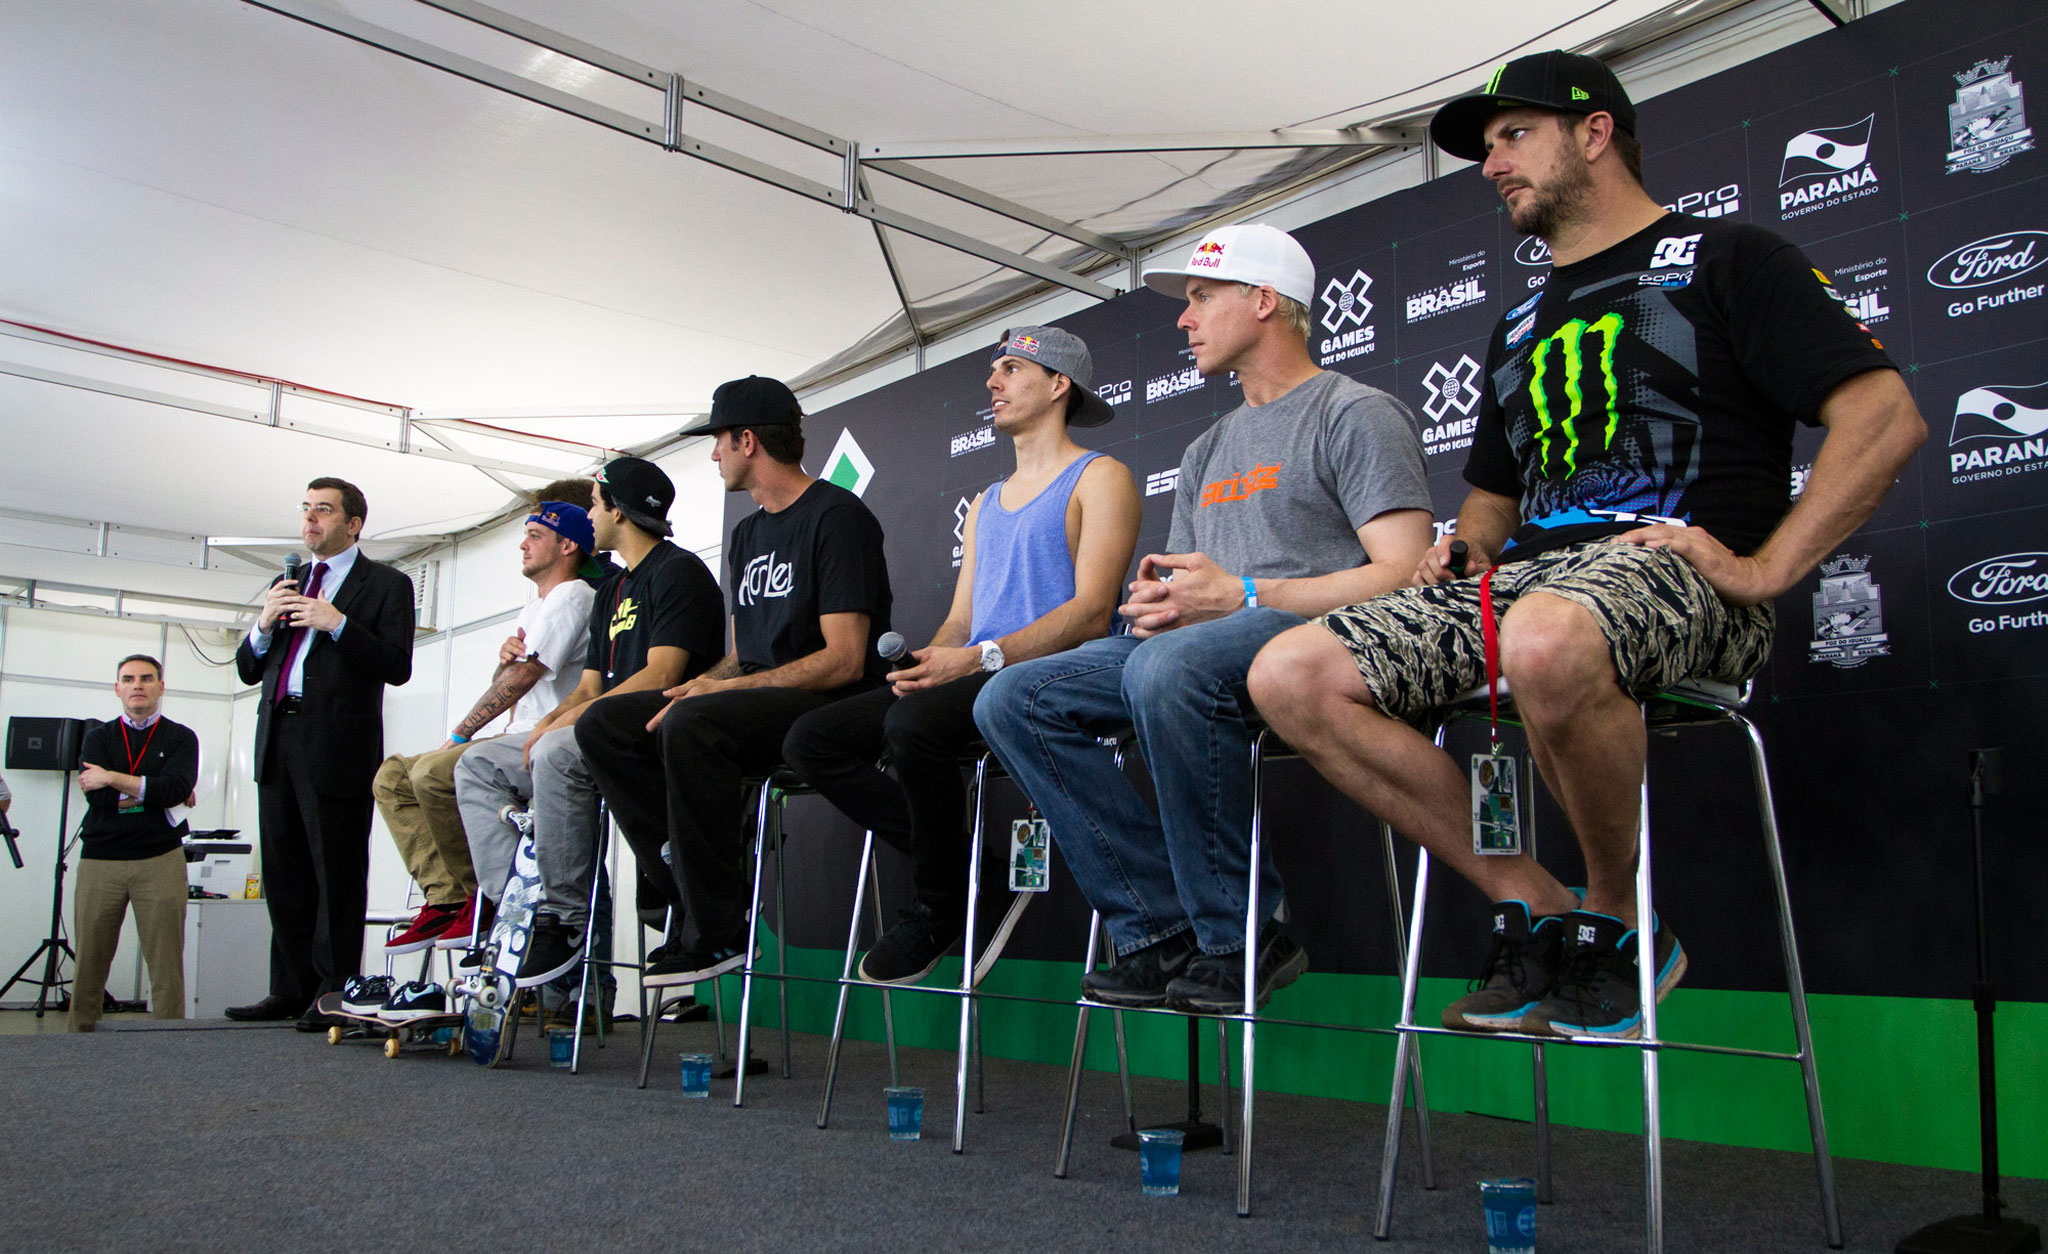 From left to right, Ryan Sheckler, Paul Rodriguez, Bob Burnquist, Daniel Dhers, Kevin Robinson and Ken Block during the press conference that opened X Games Foz do Iguau.